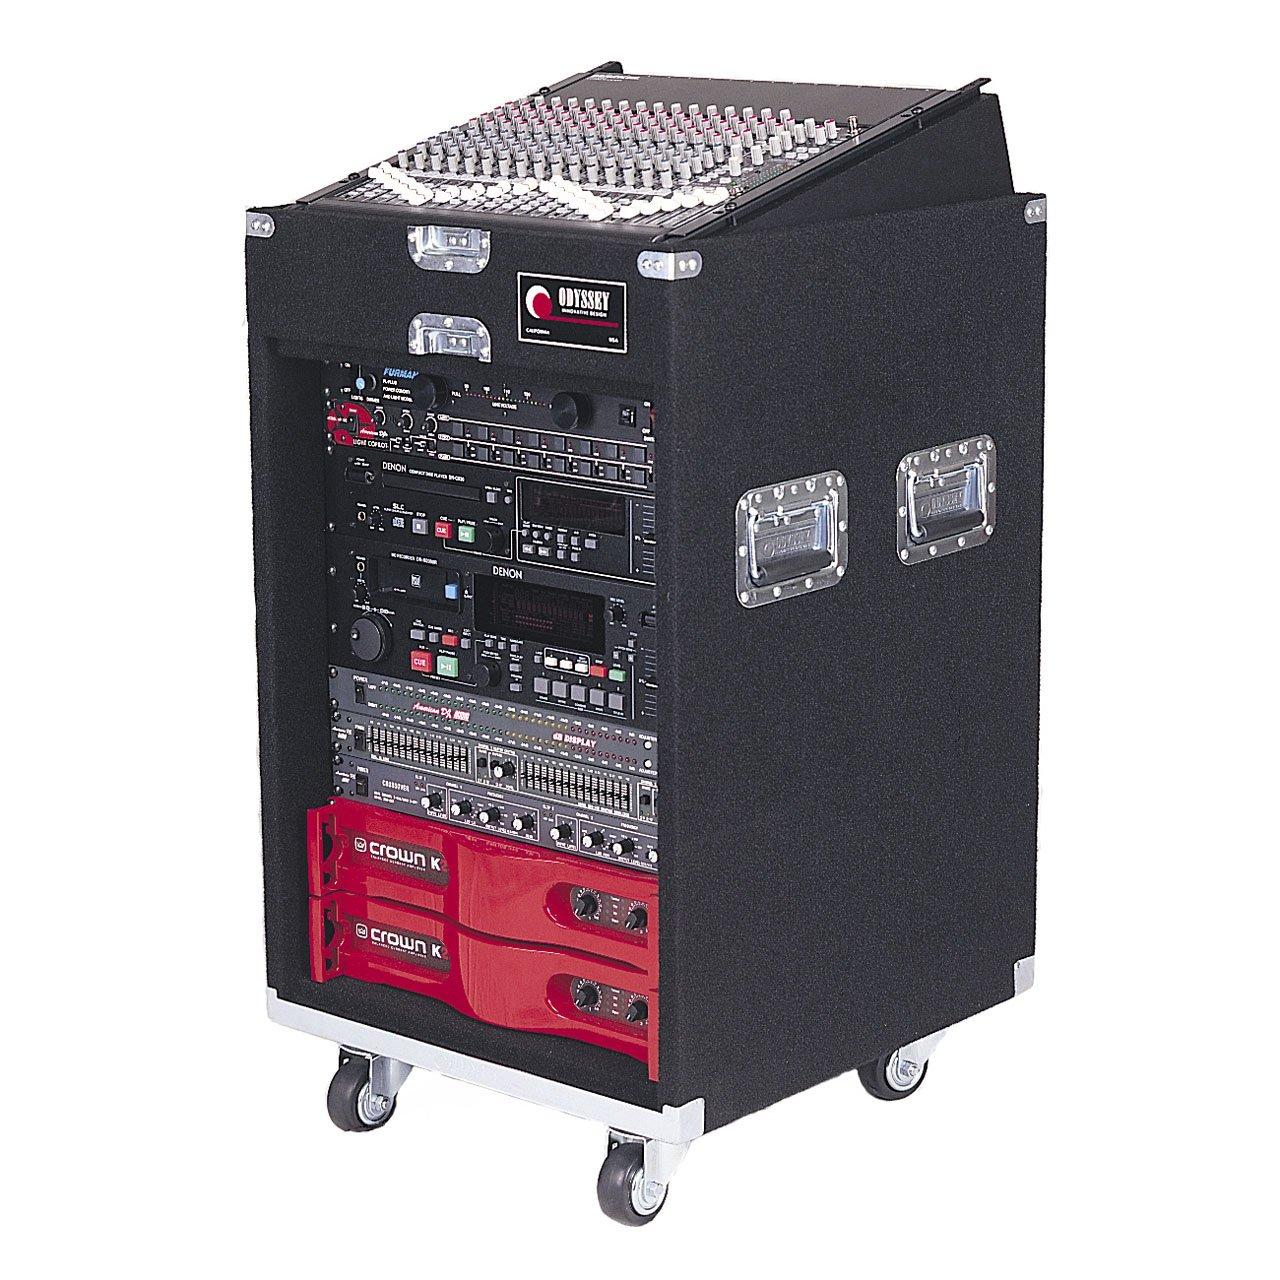 Odyssey CXP1114W Pro Combo Carpeted Rack With Recessed Hardware And Wheels: 11u Top, 14u Bottom